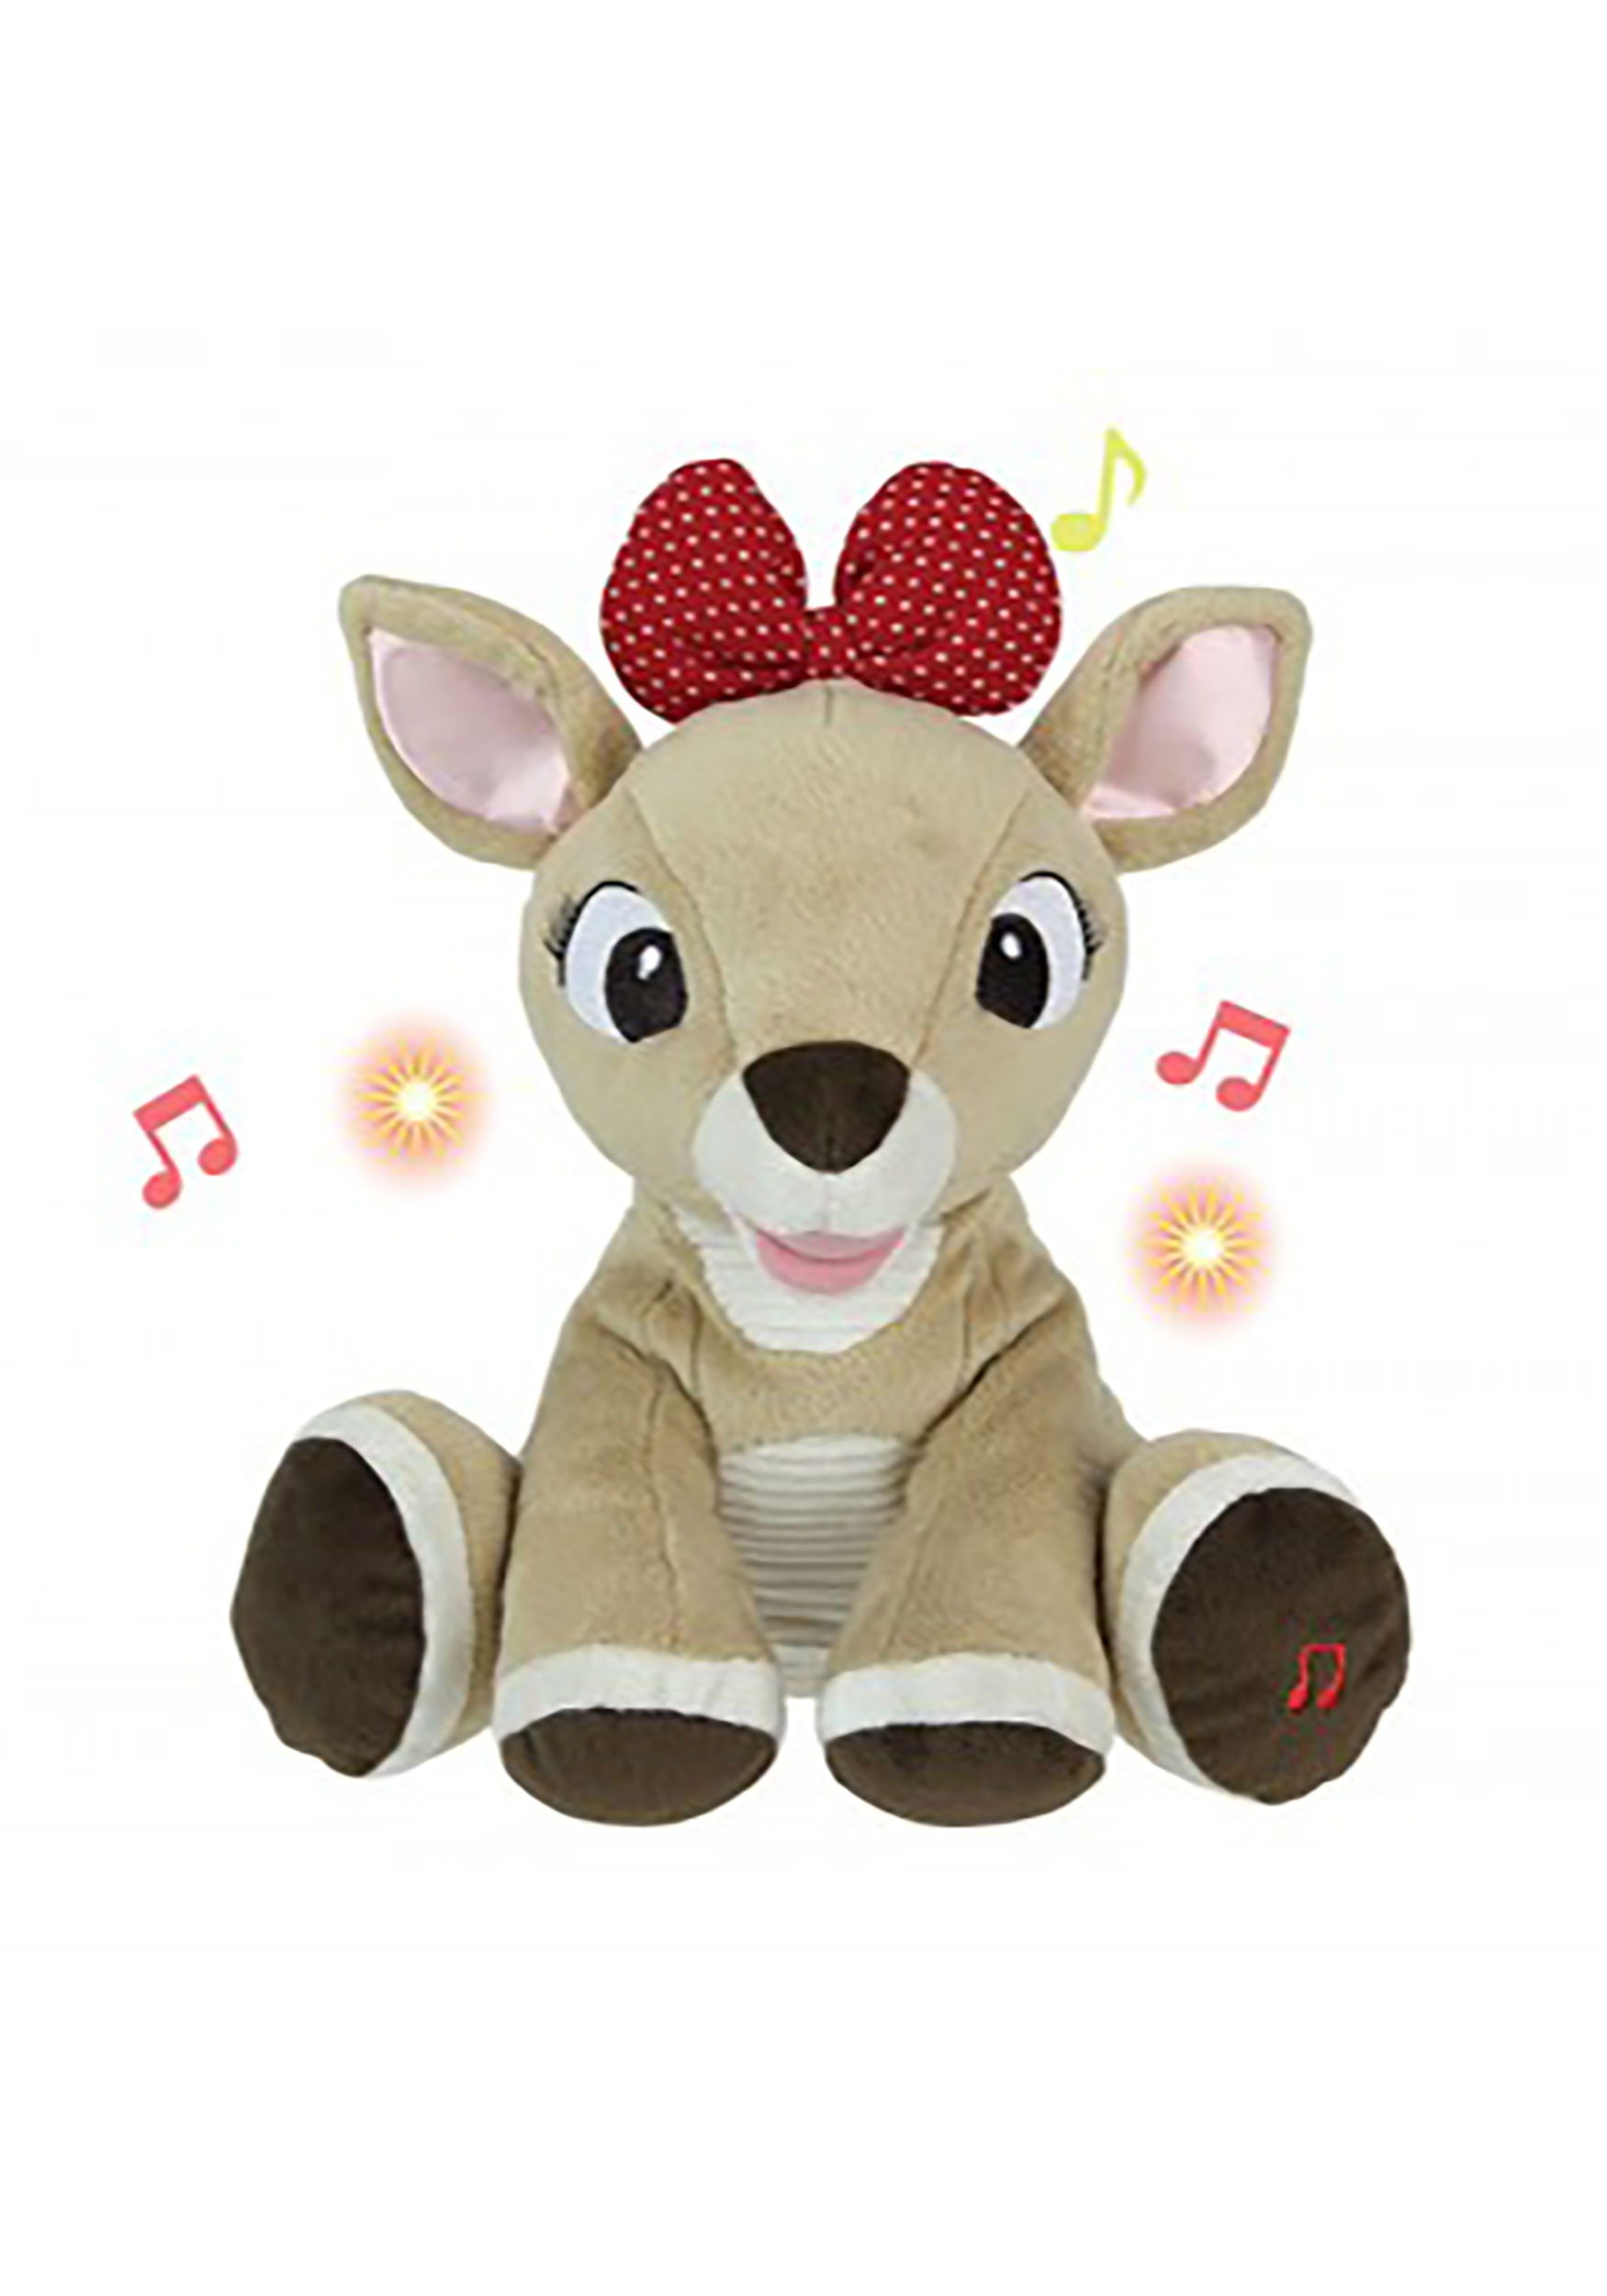 ea3858f97d2ac Clarice Rudolph the Red Nosed Reindeer Plush with Music and Lights